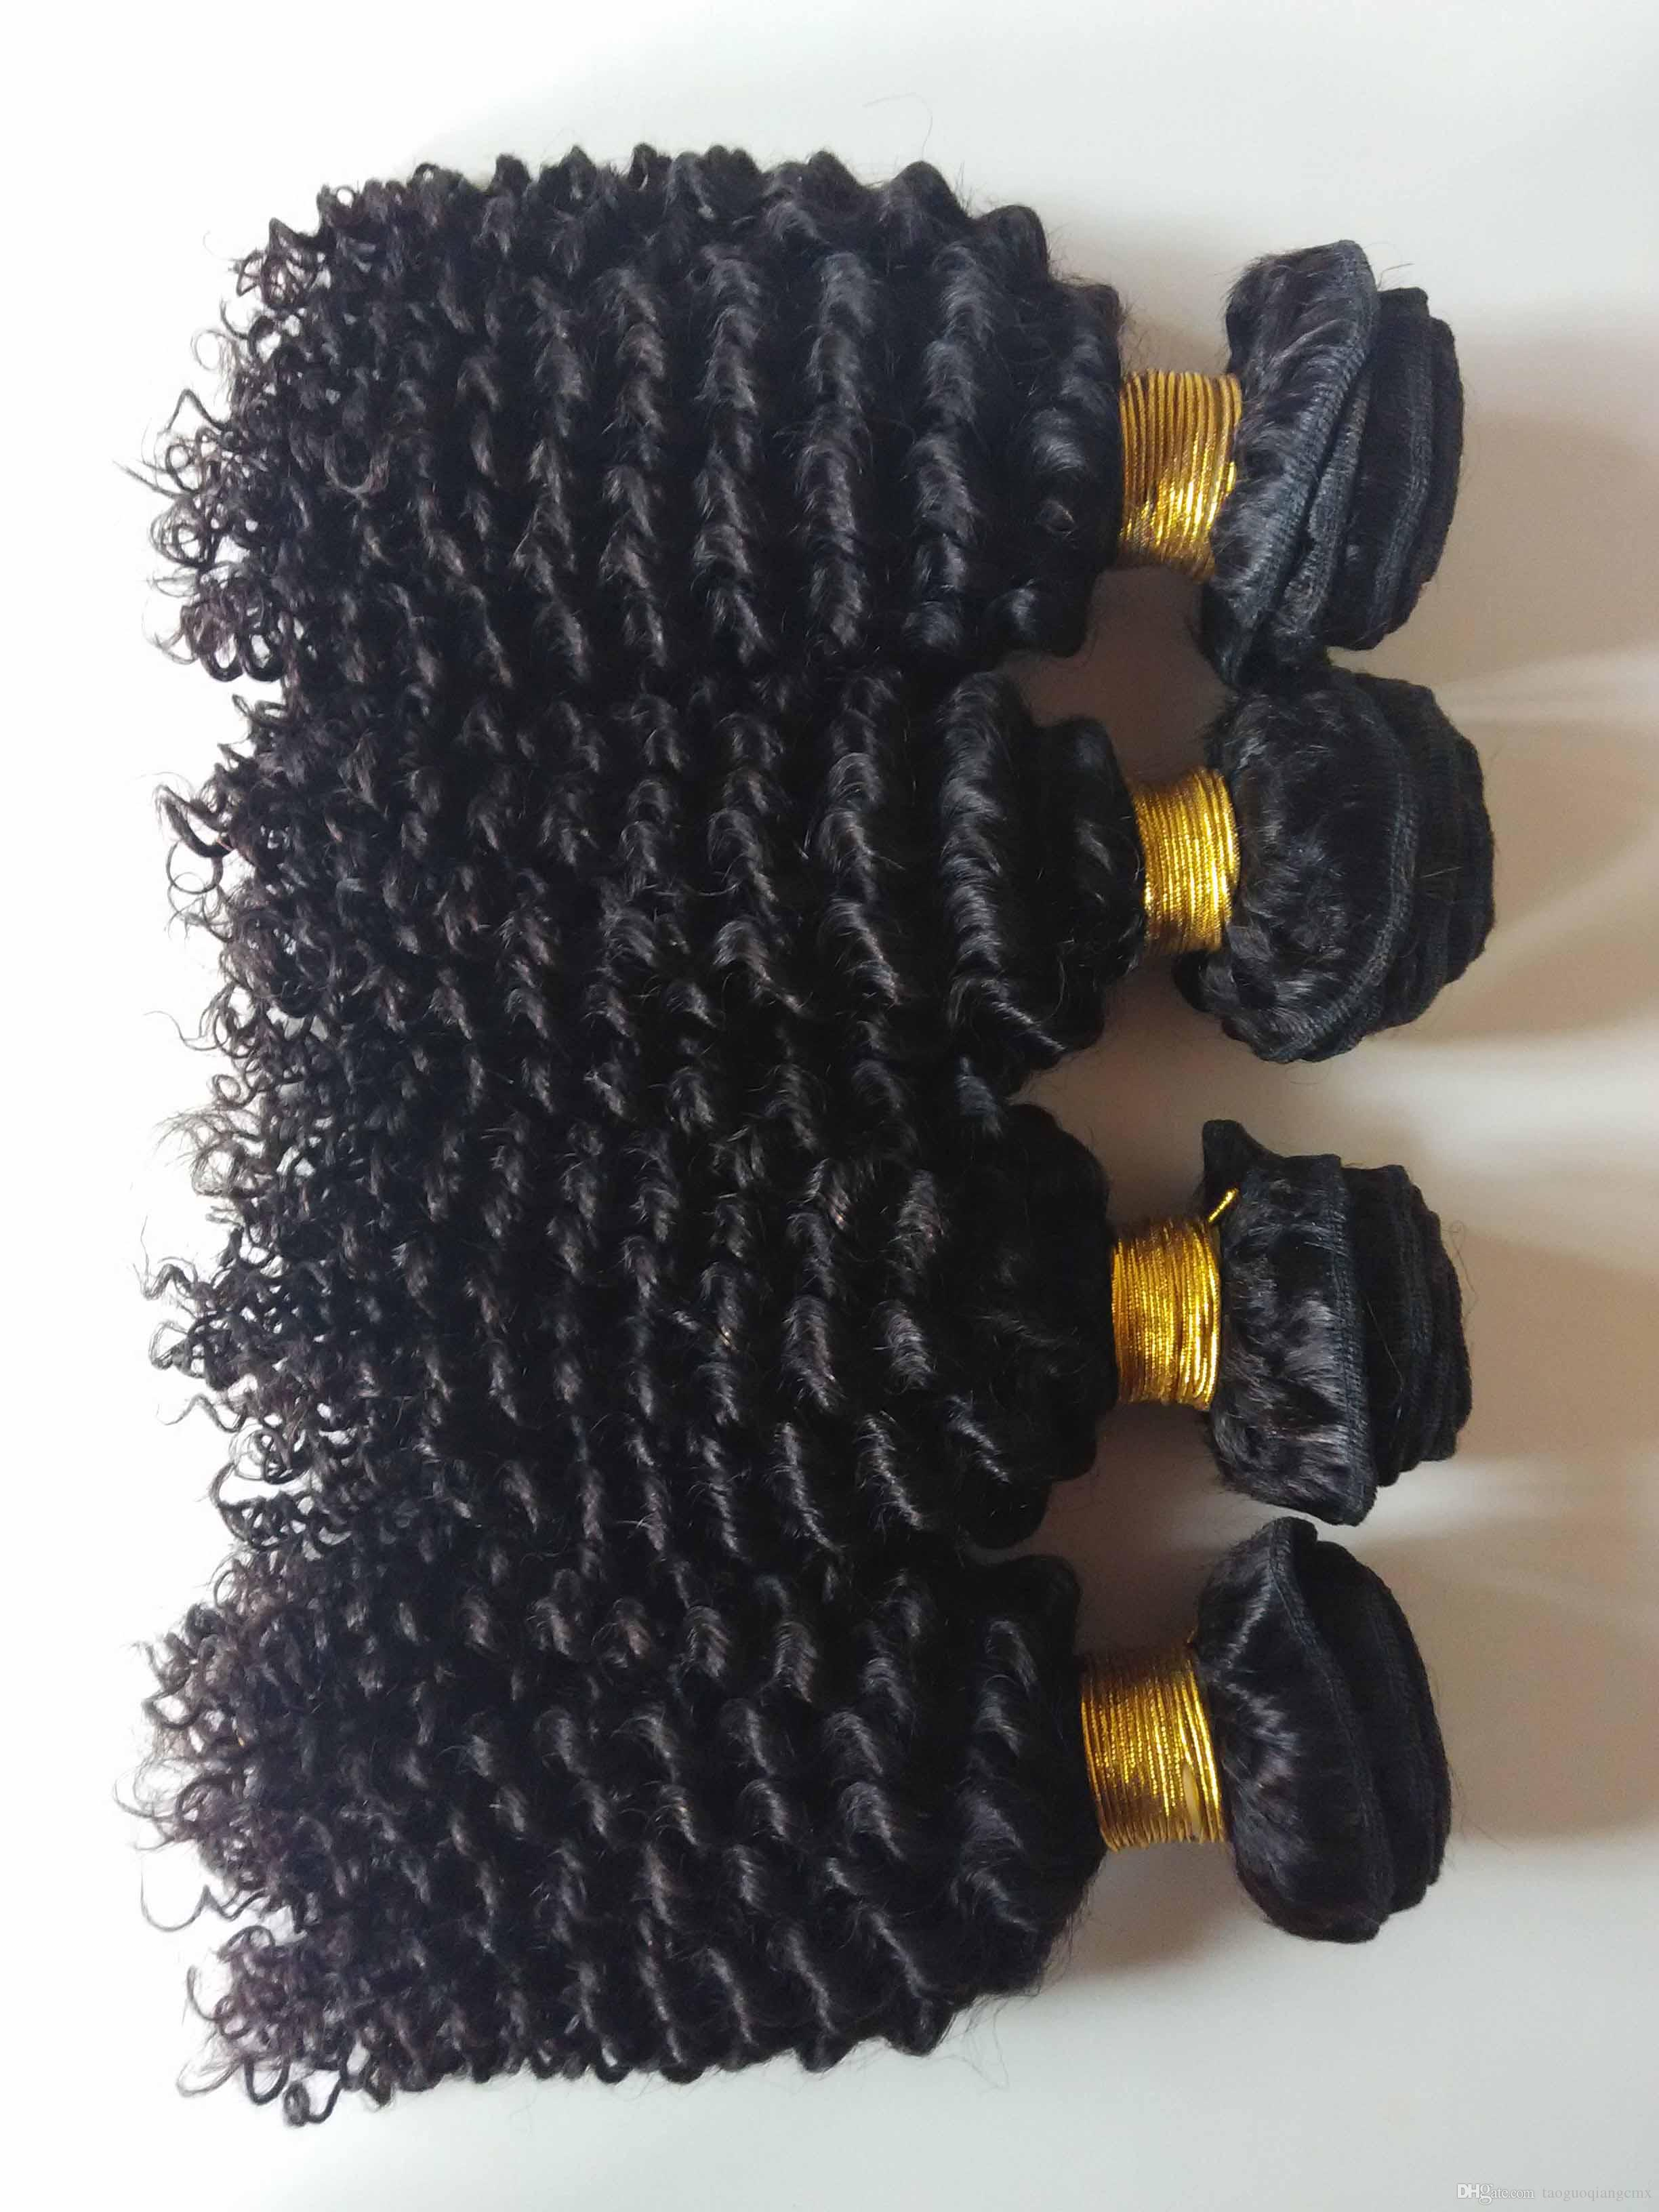 Unprocessed Brazilian virgin human hair weft beauty kinky curly hair extensions for African American hair 3 4 5pcs/lot double weft DHgate